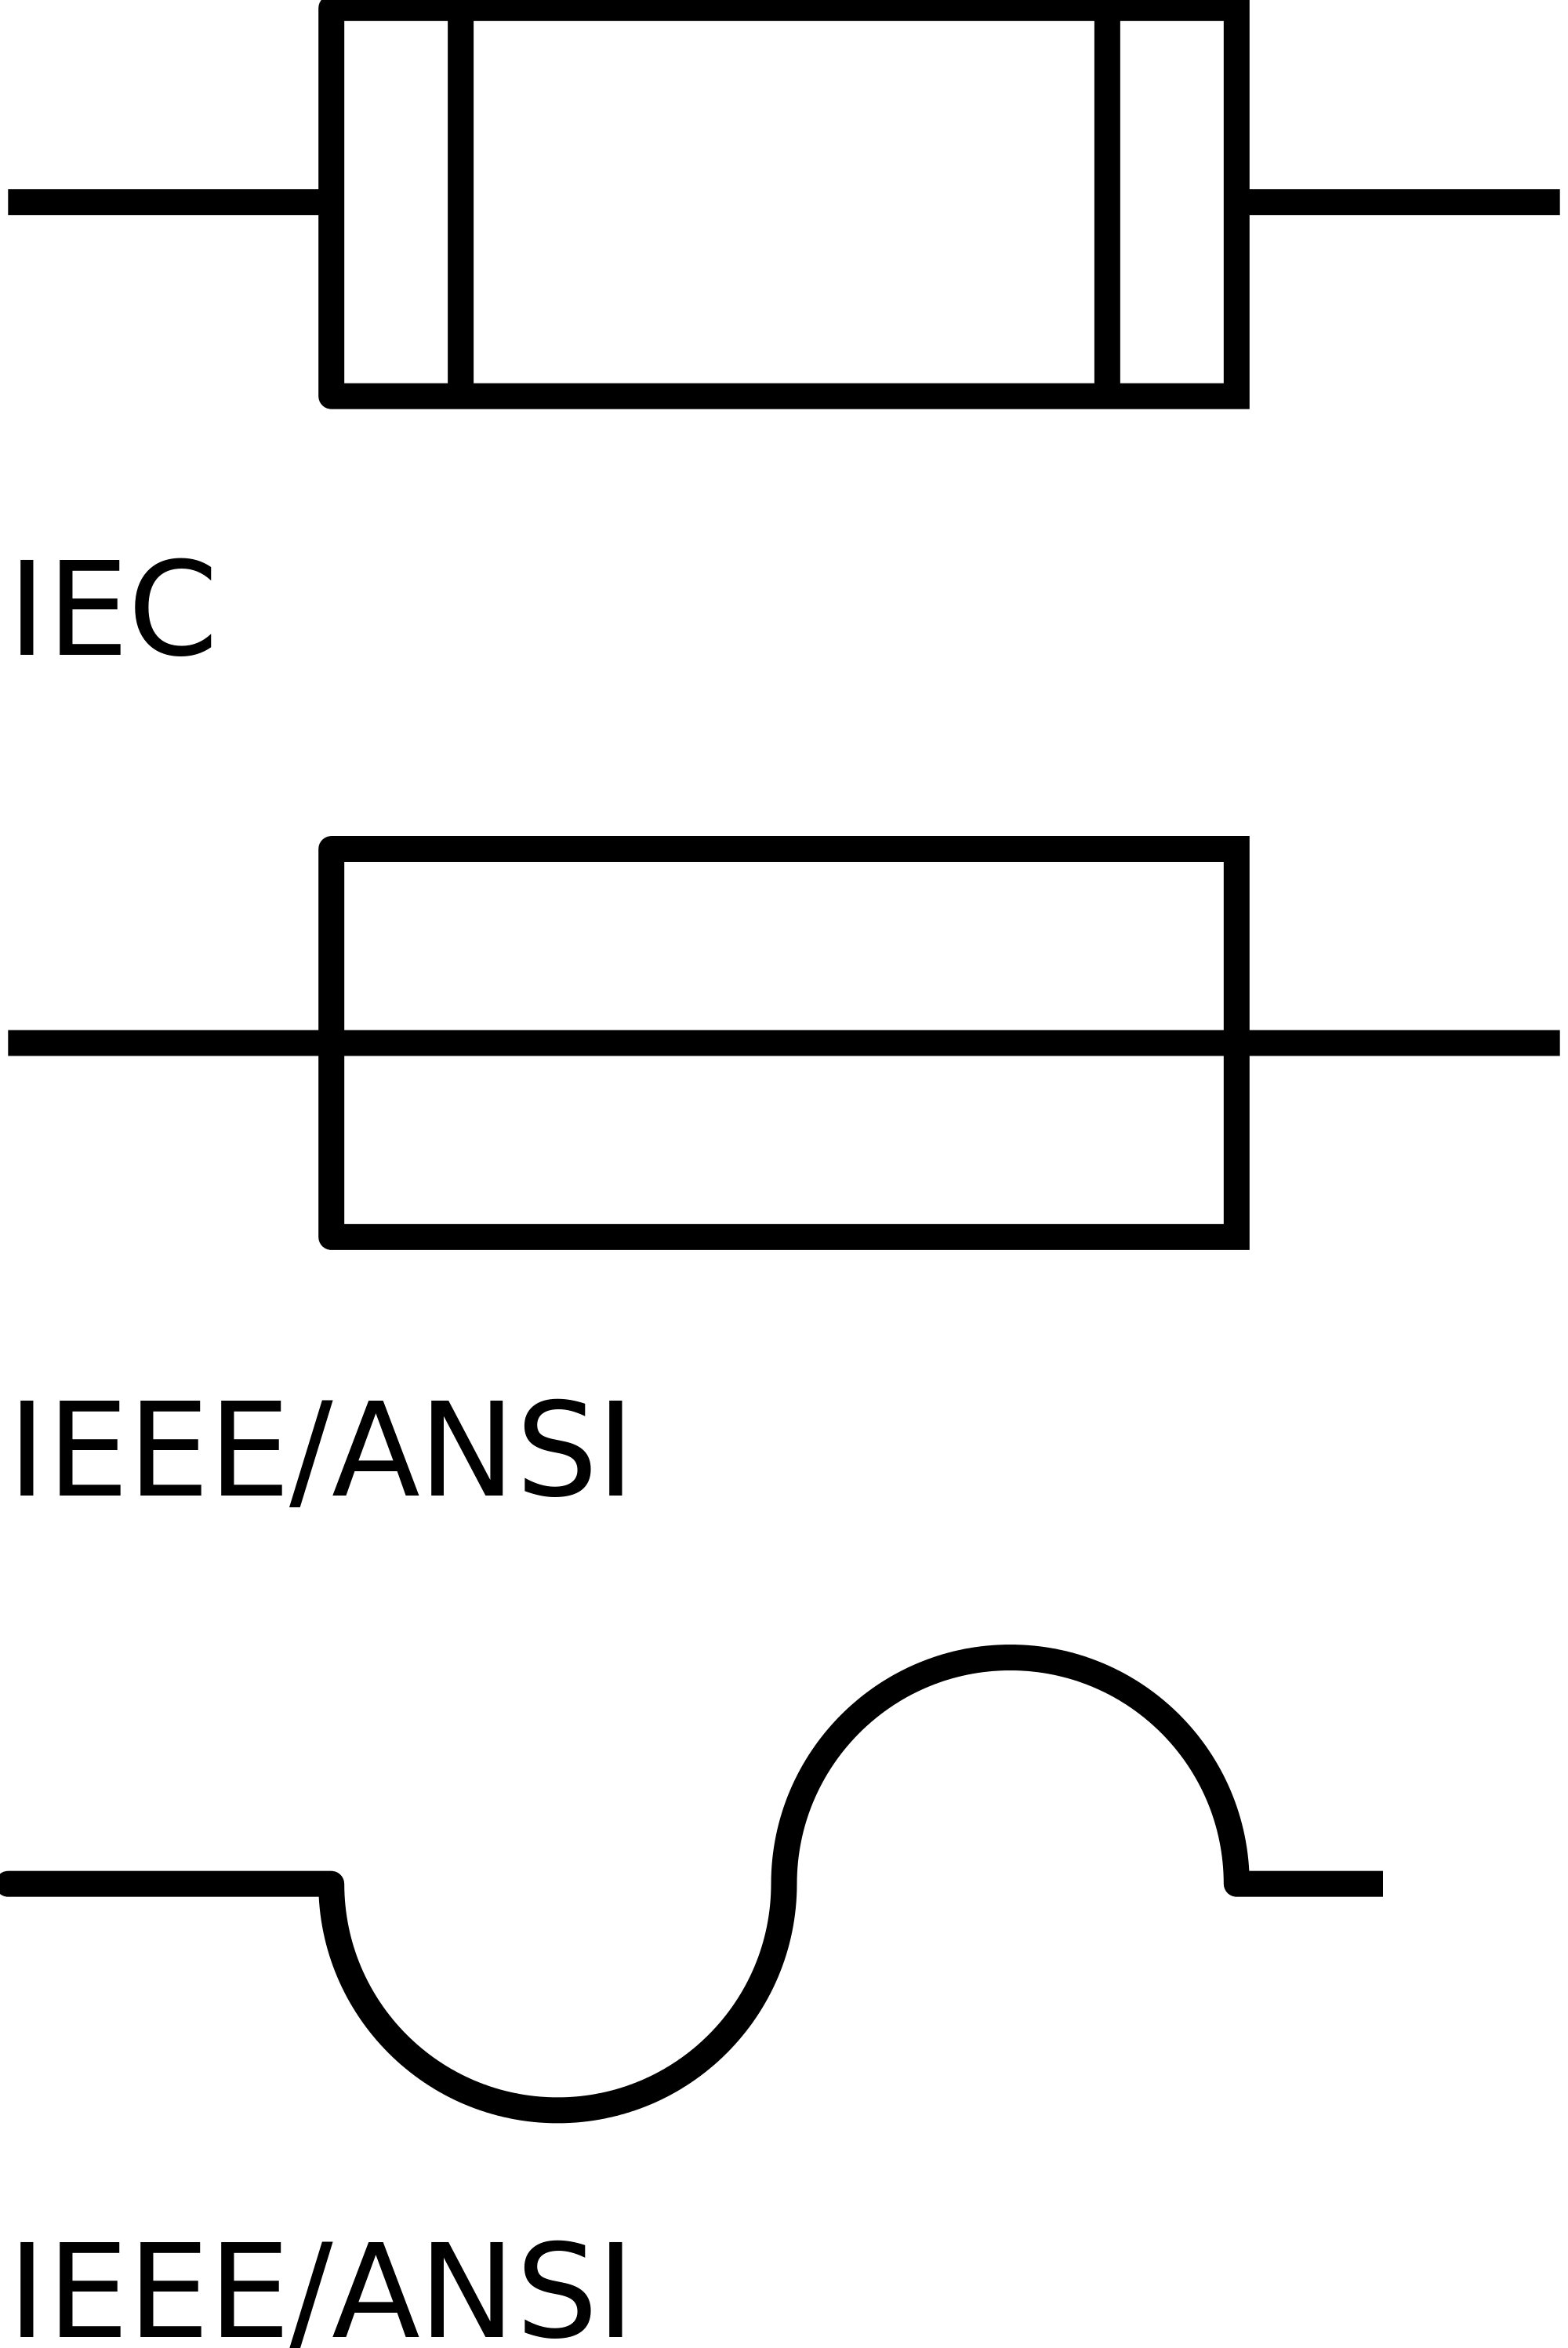 Wiring diagram symbols free. Electrical clipart fuse